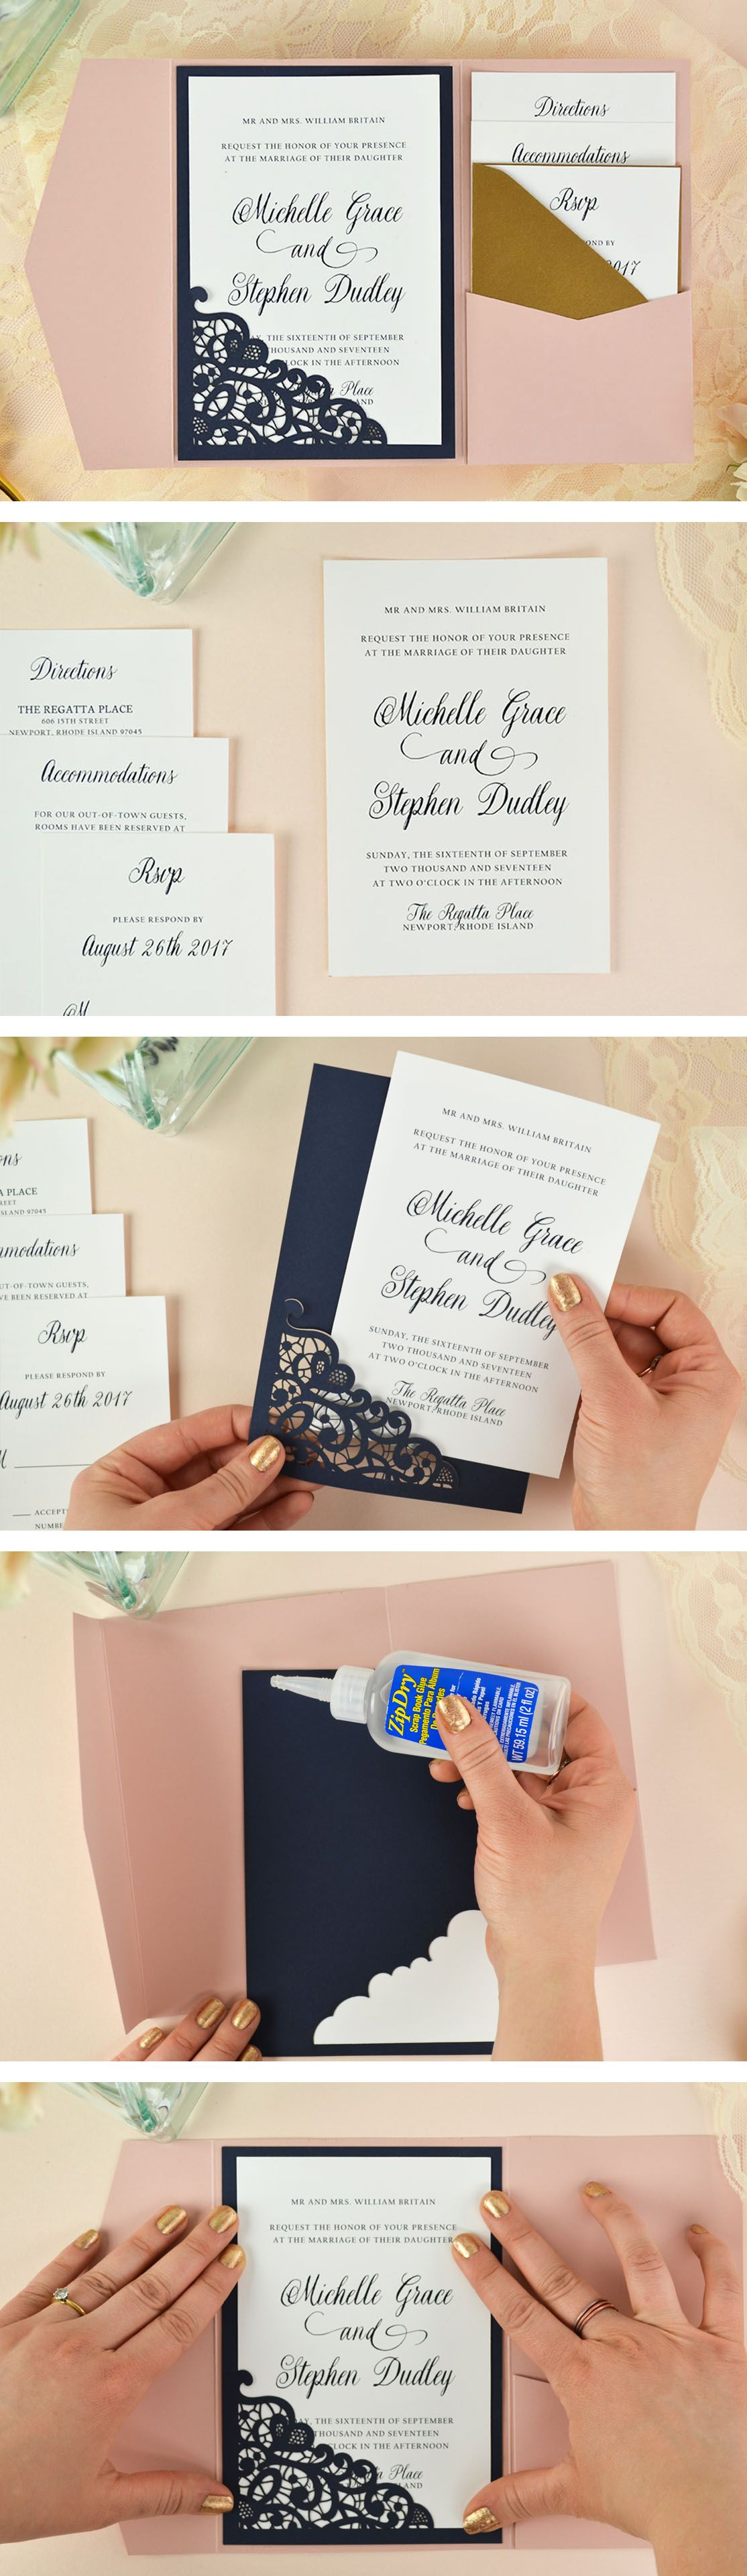 DIY Laser Cut Wedding Invitations Itu0027s